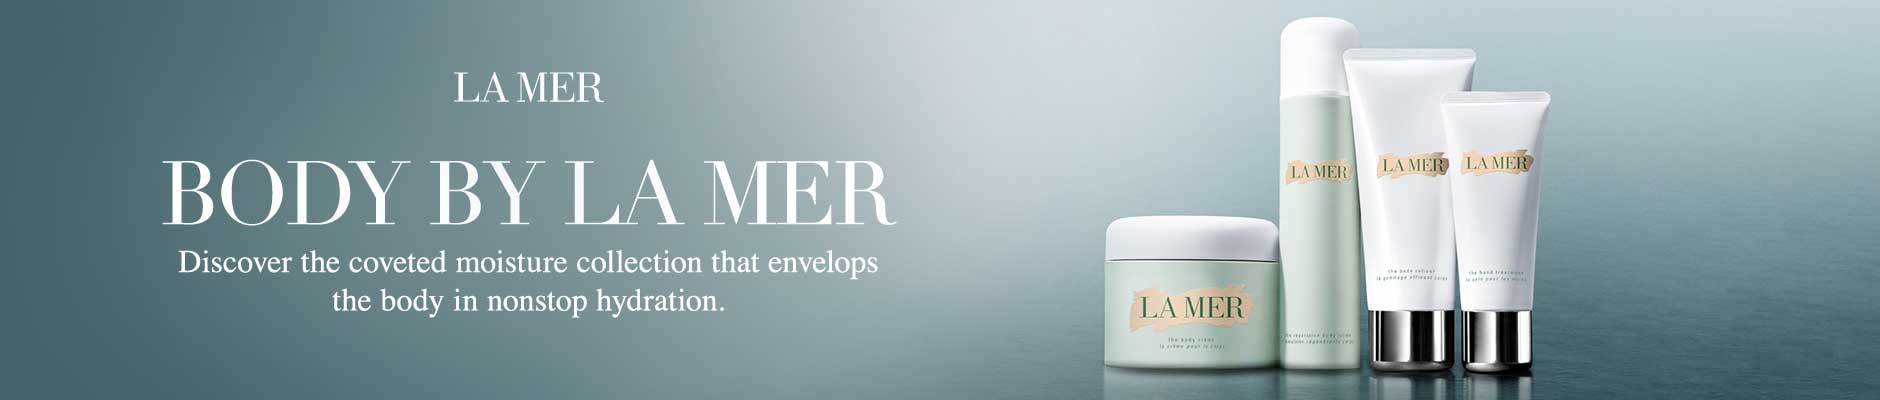 La Mer - Body by La Mer - discover the coveted moisture collection that envelops the body in nonstop hydration